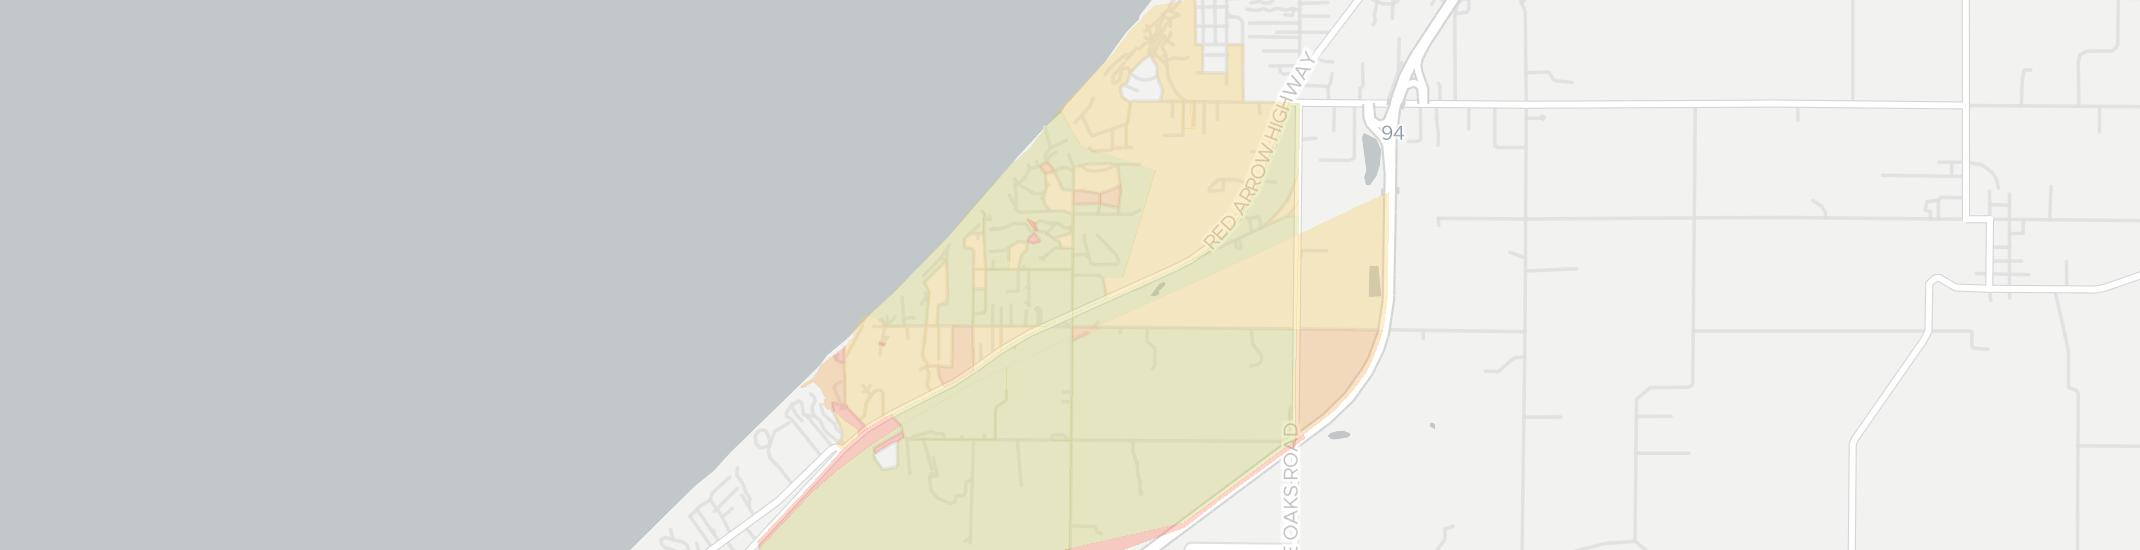 Harbert Internet Competition Map. Click for interactive map.